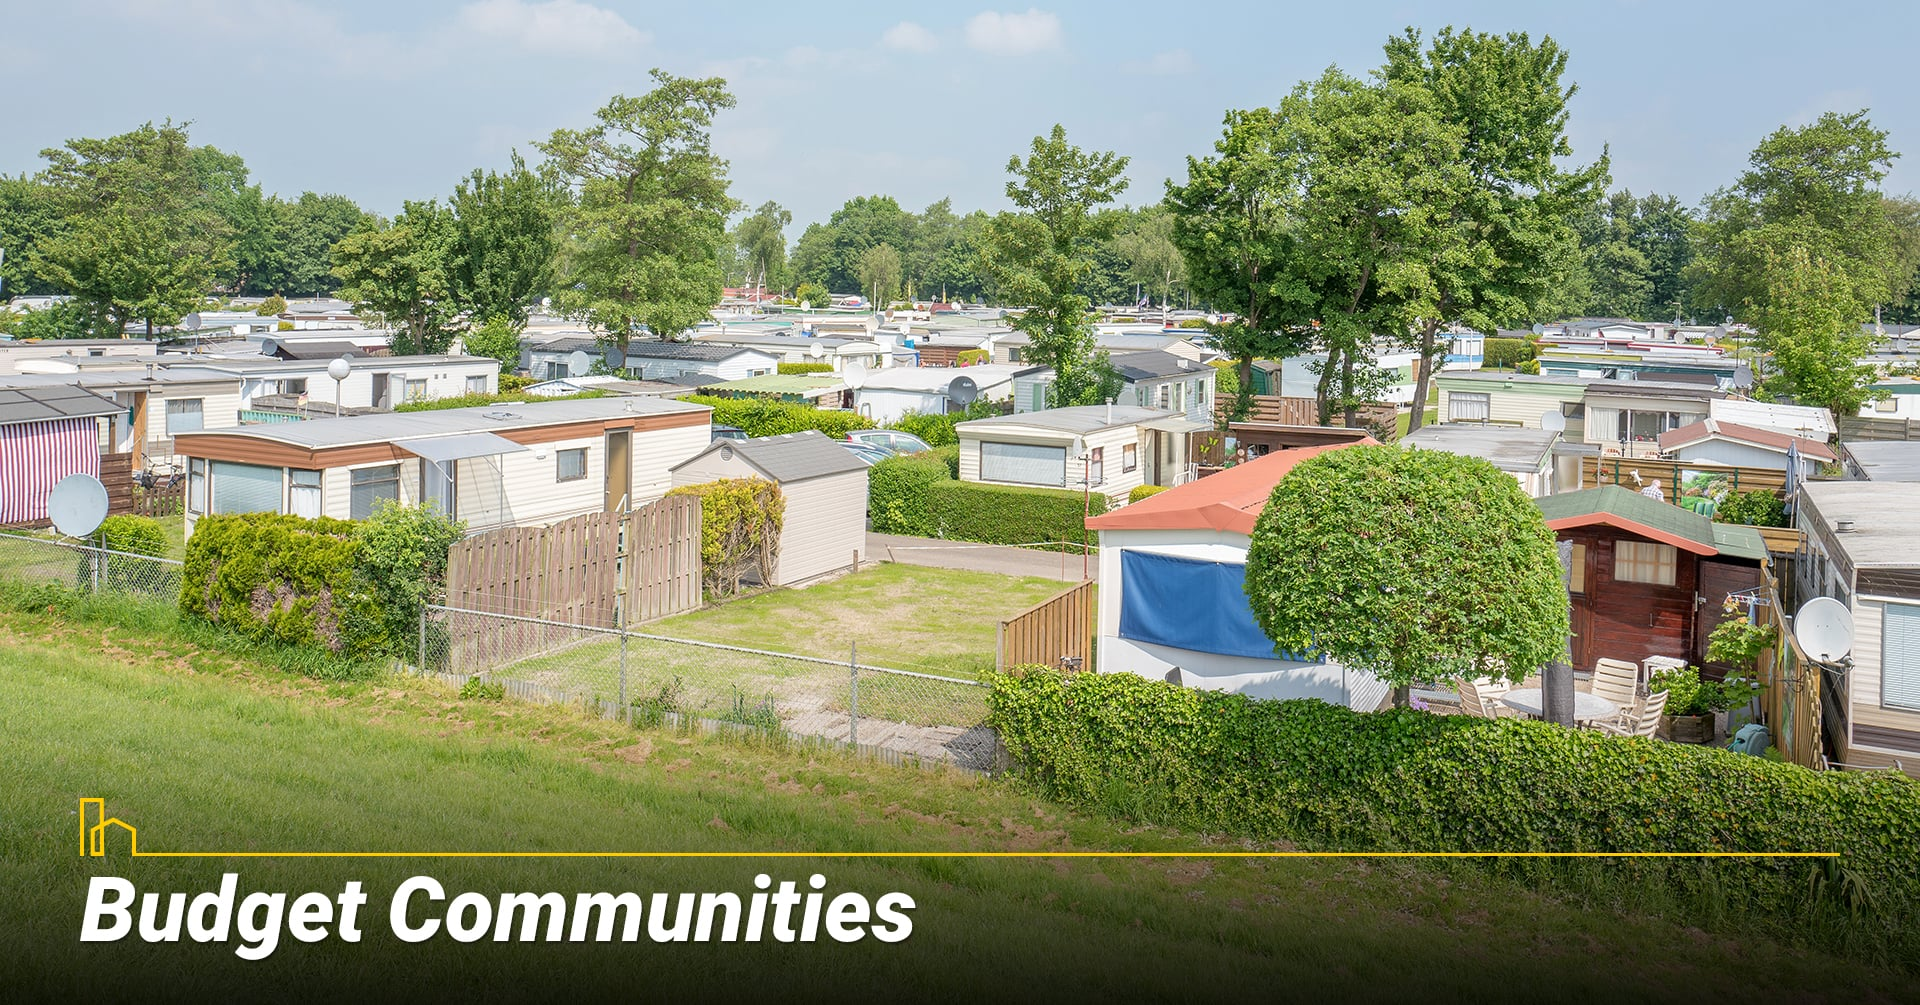 Budget Communities, affordable mobile home communities